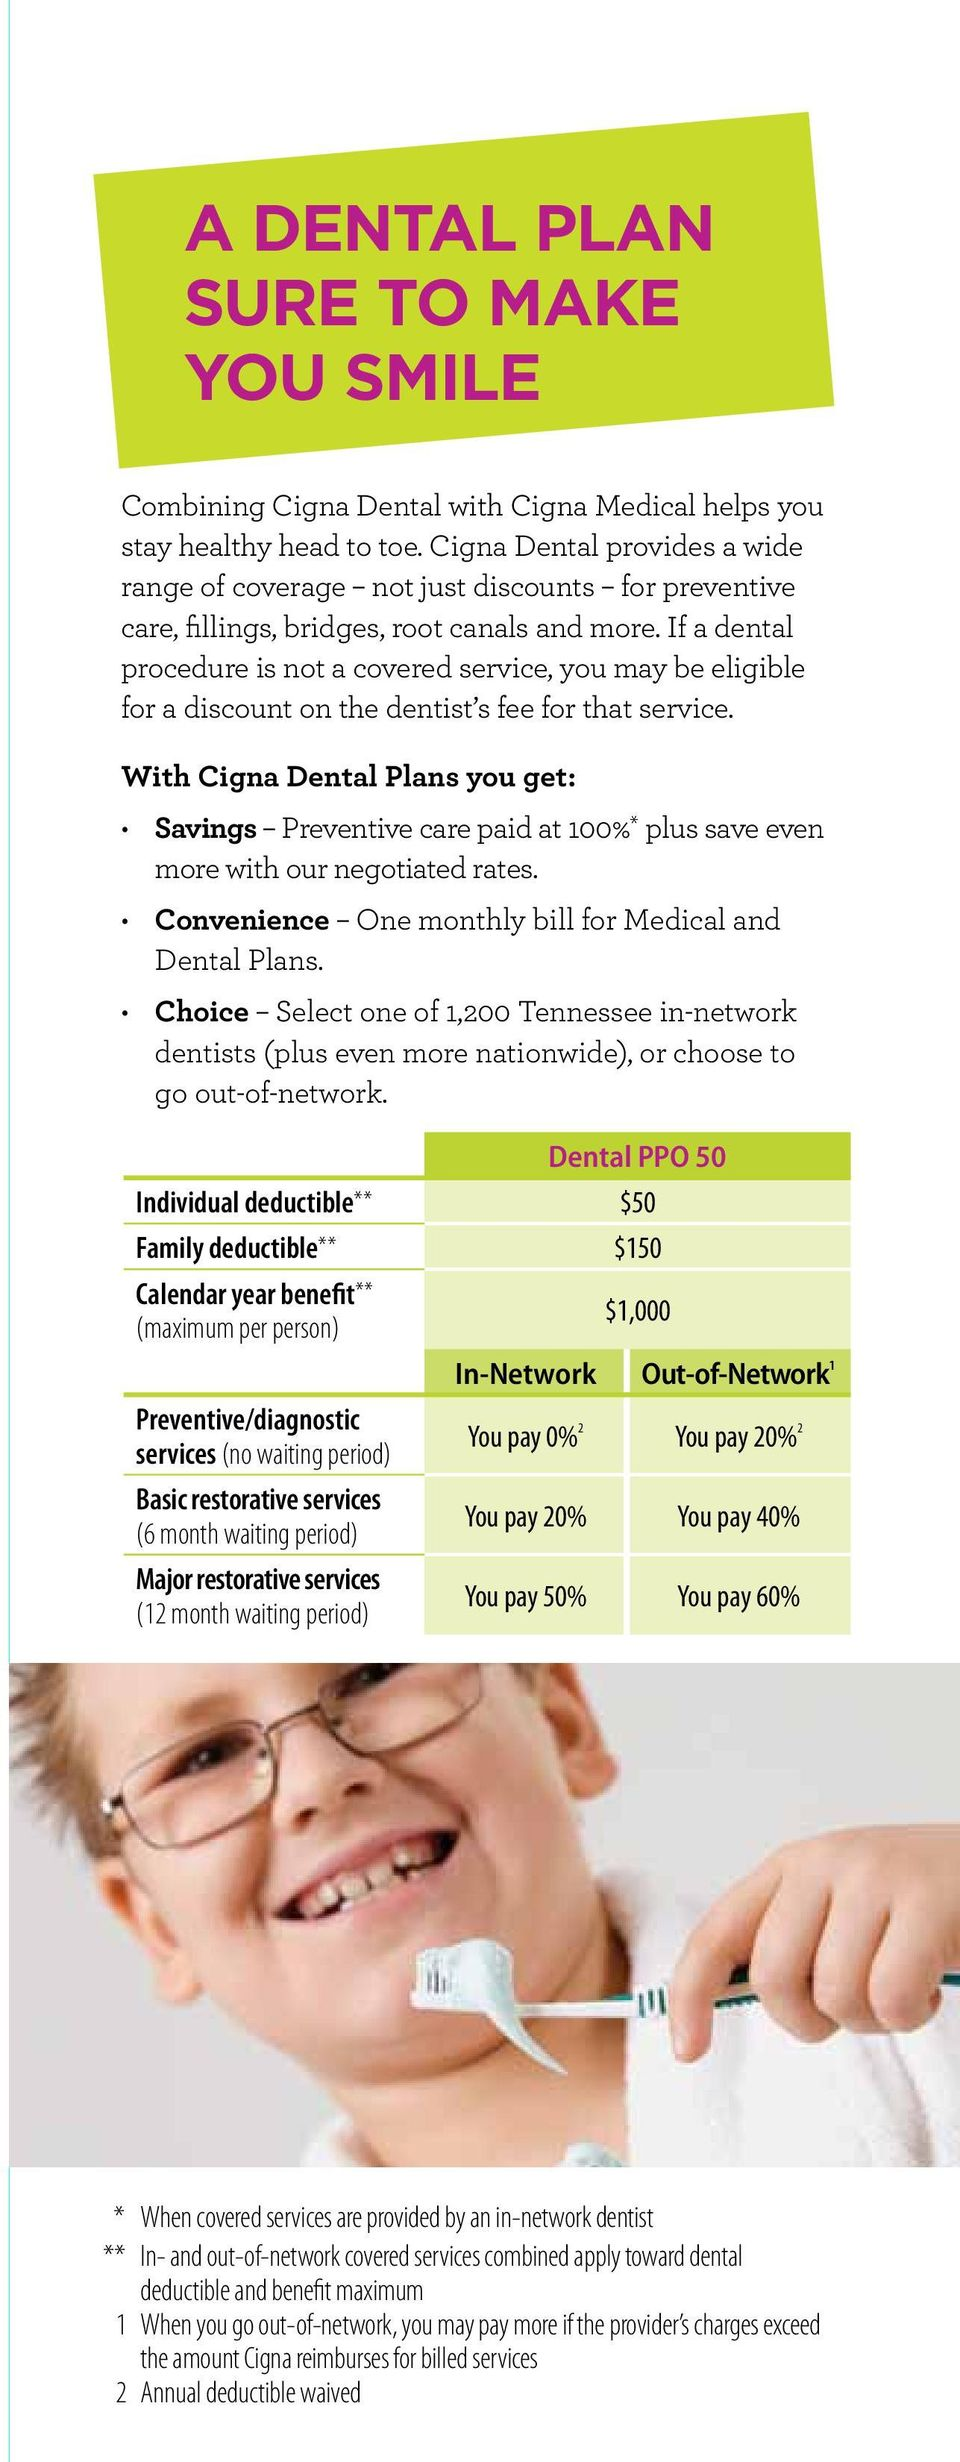 If a dental procedure is not a covered service, you may be eligible for a discount on the dentist s fee for that service.